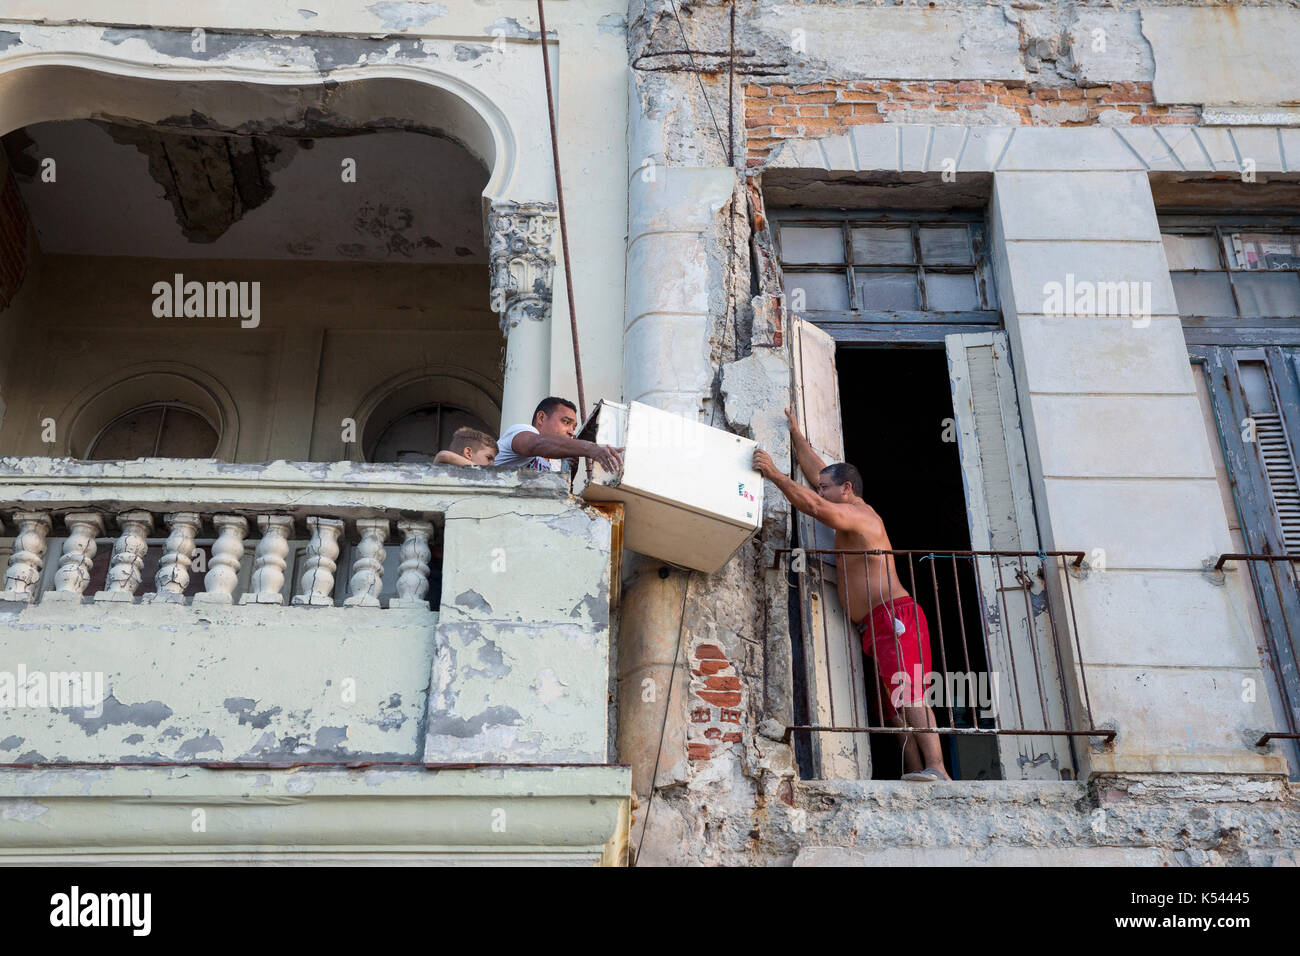 Havana locals move a fridge from one balcony to another in Havana in Cuba in the Caribbean - Stock Image